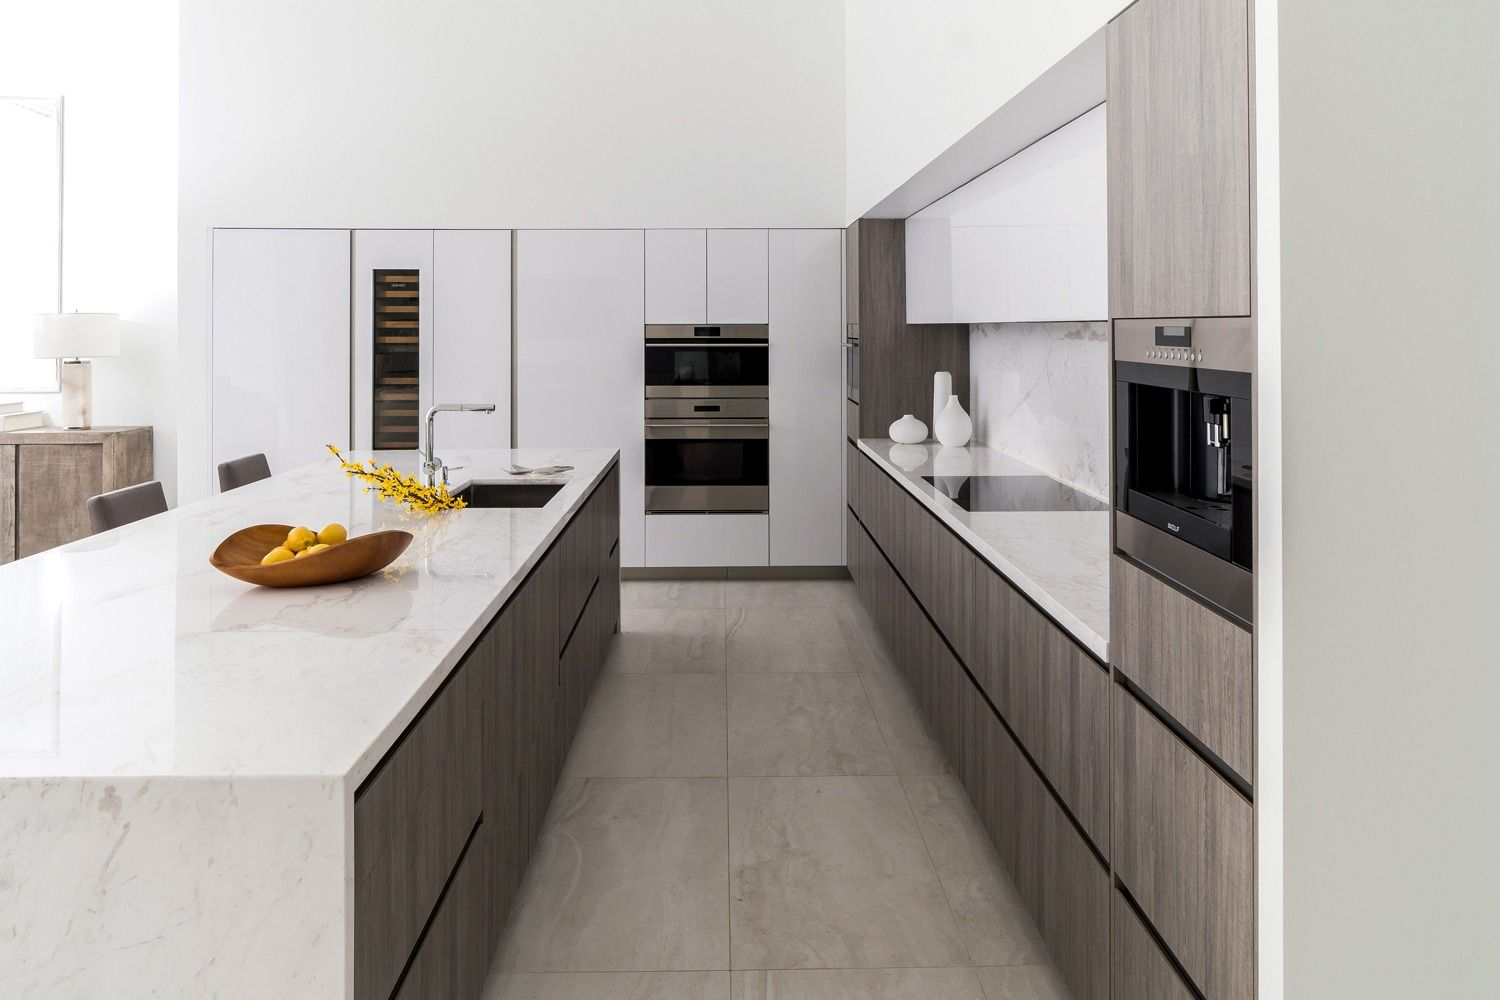 Snaidero Way Kitchen Cabinetry In Arctic White High Gloss Lacquer And Hampton Grey Melamine Palm In 2020 Kitchen Design Kitchen Cabinetry High Gloss Kitchen Cabinets